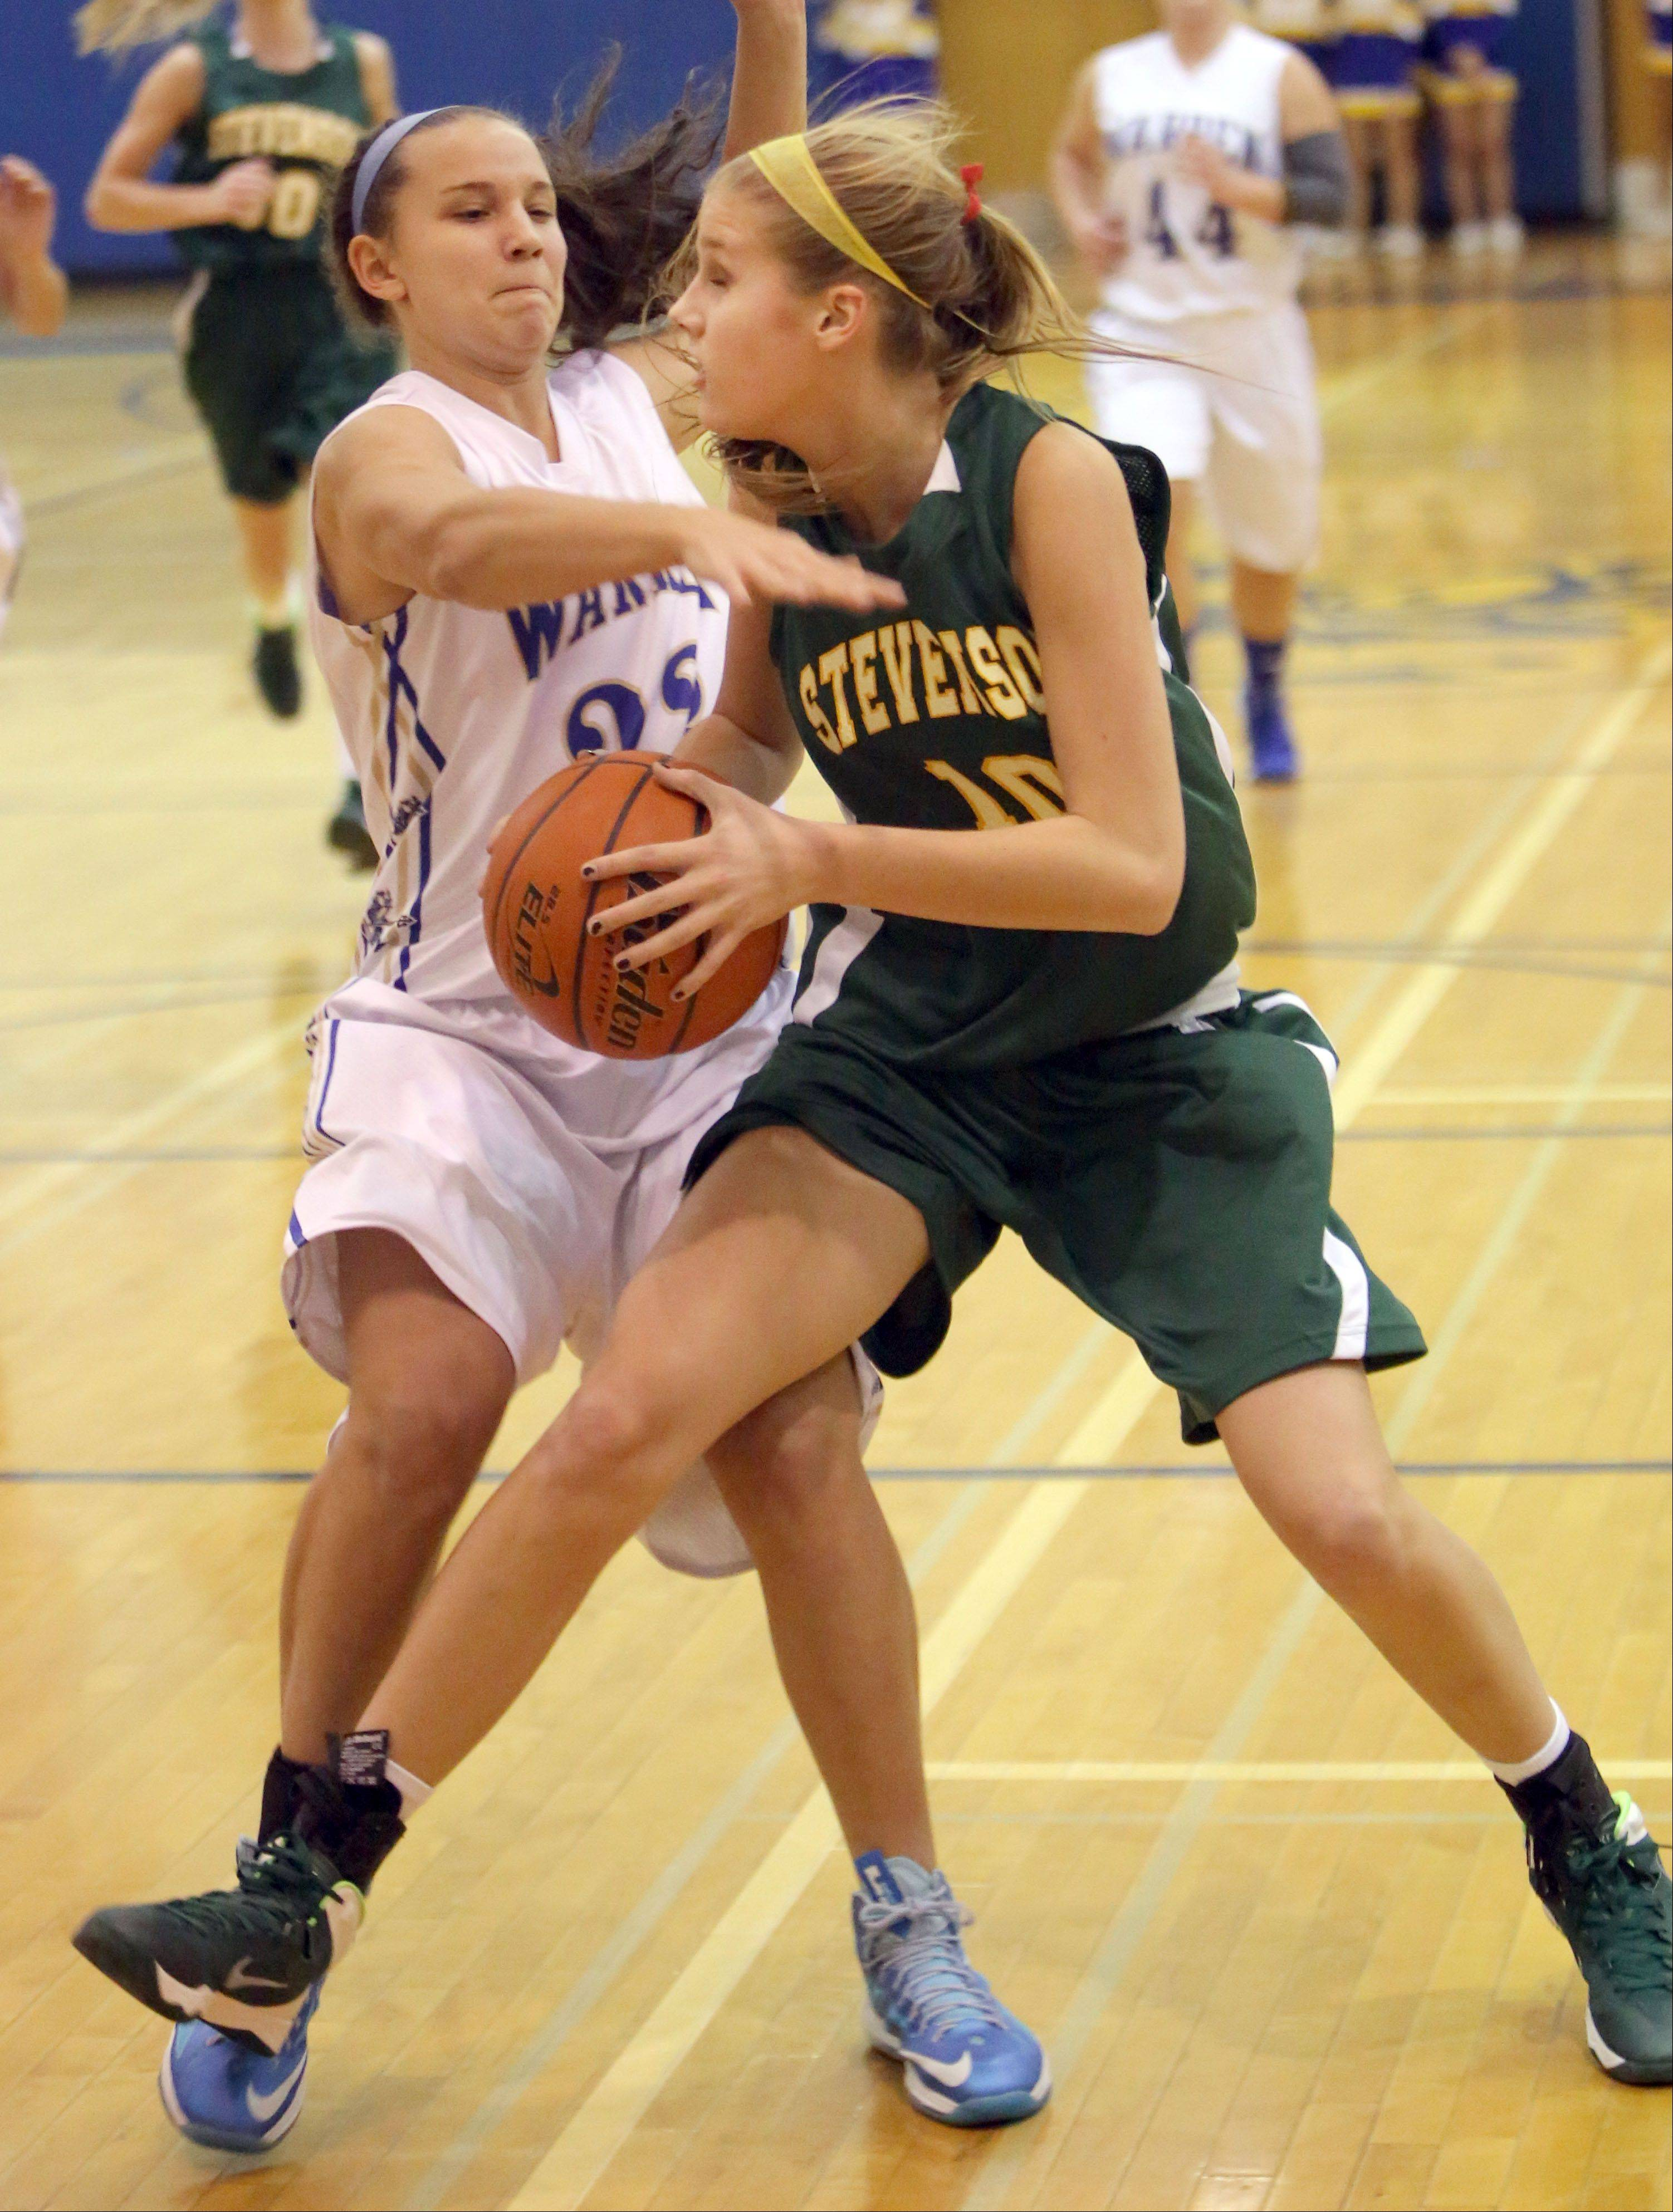 Stevenson's Chloe Ekenberg, right, drives on Warren's Danielle Cassidy on Tuesday night in Gurnee.